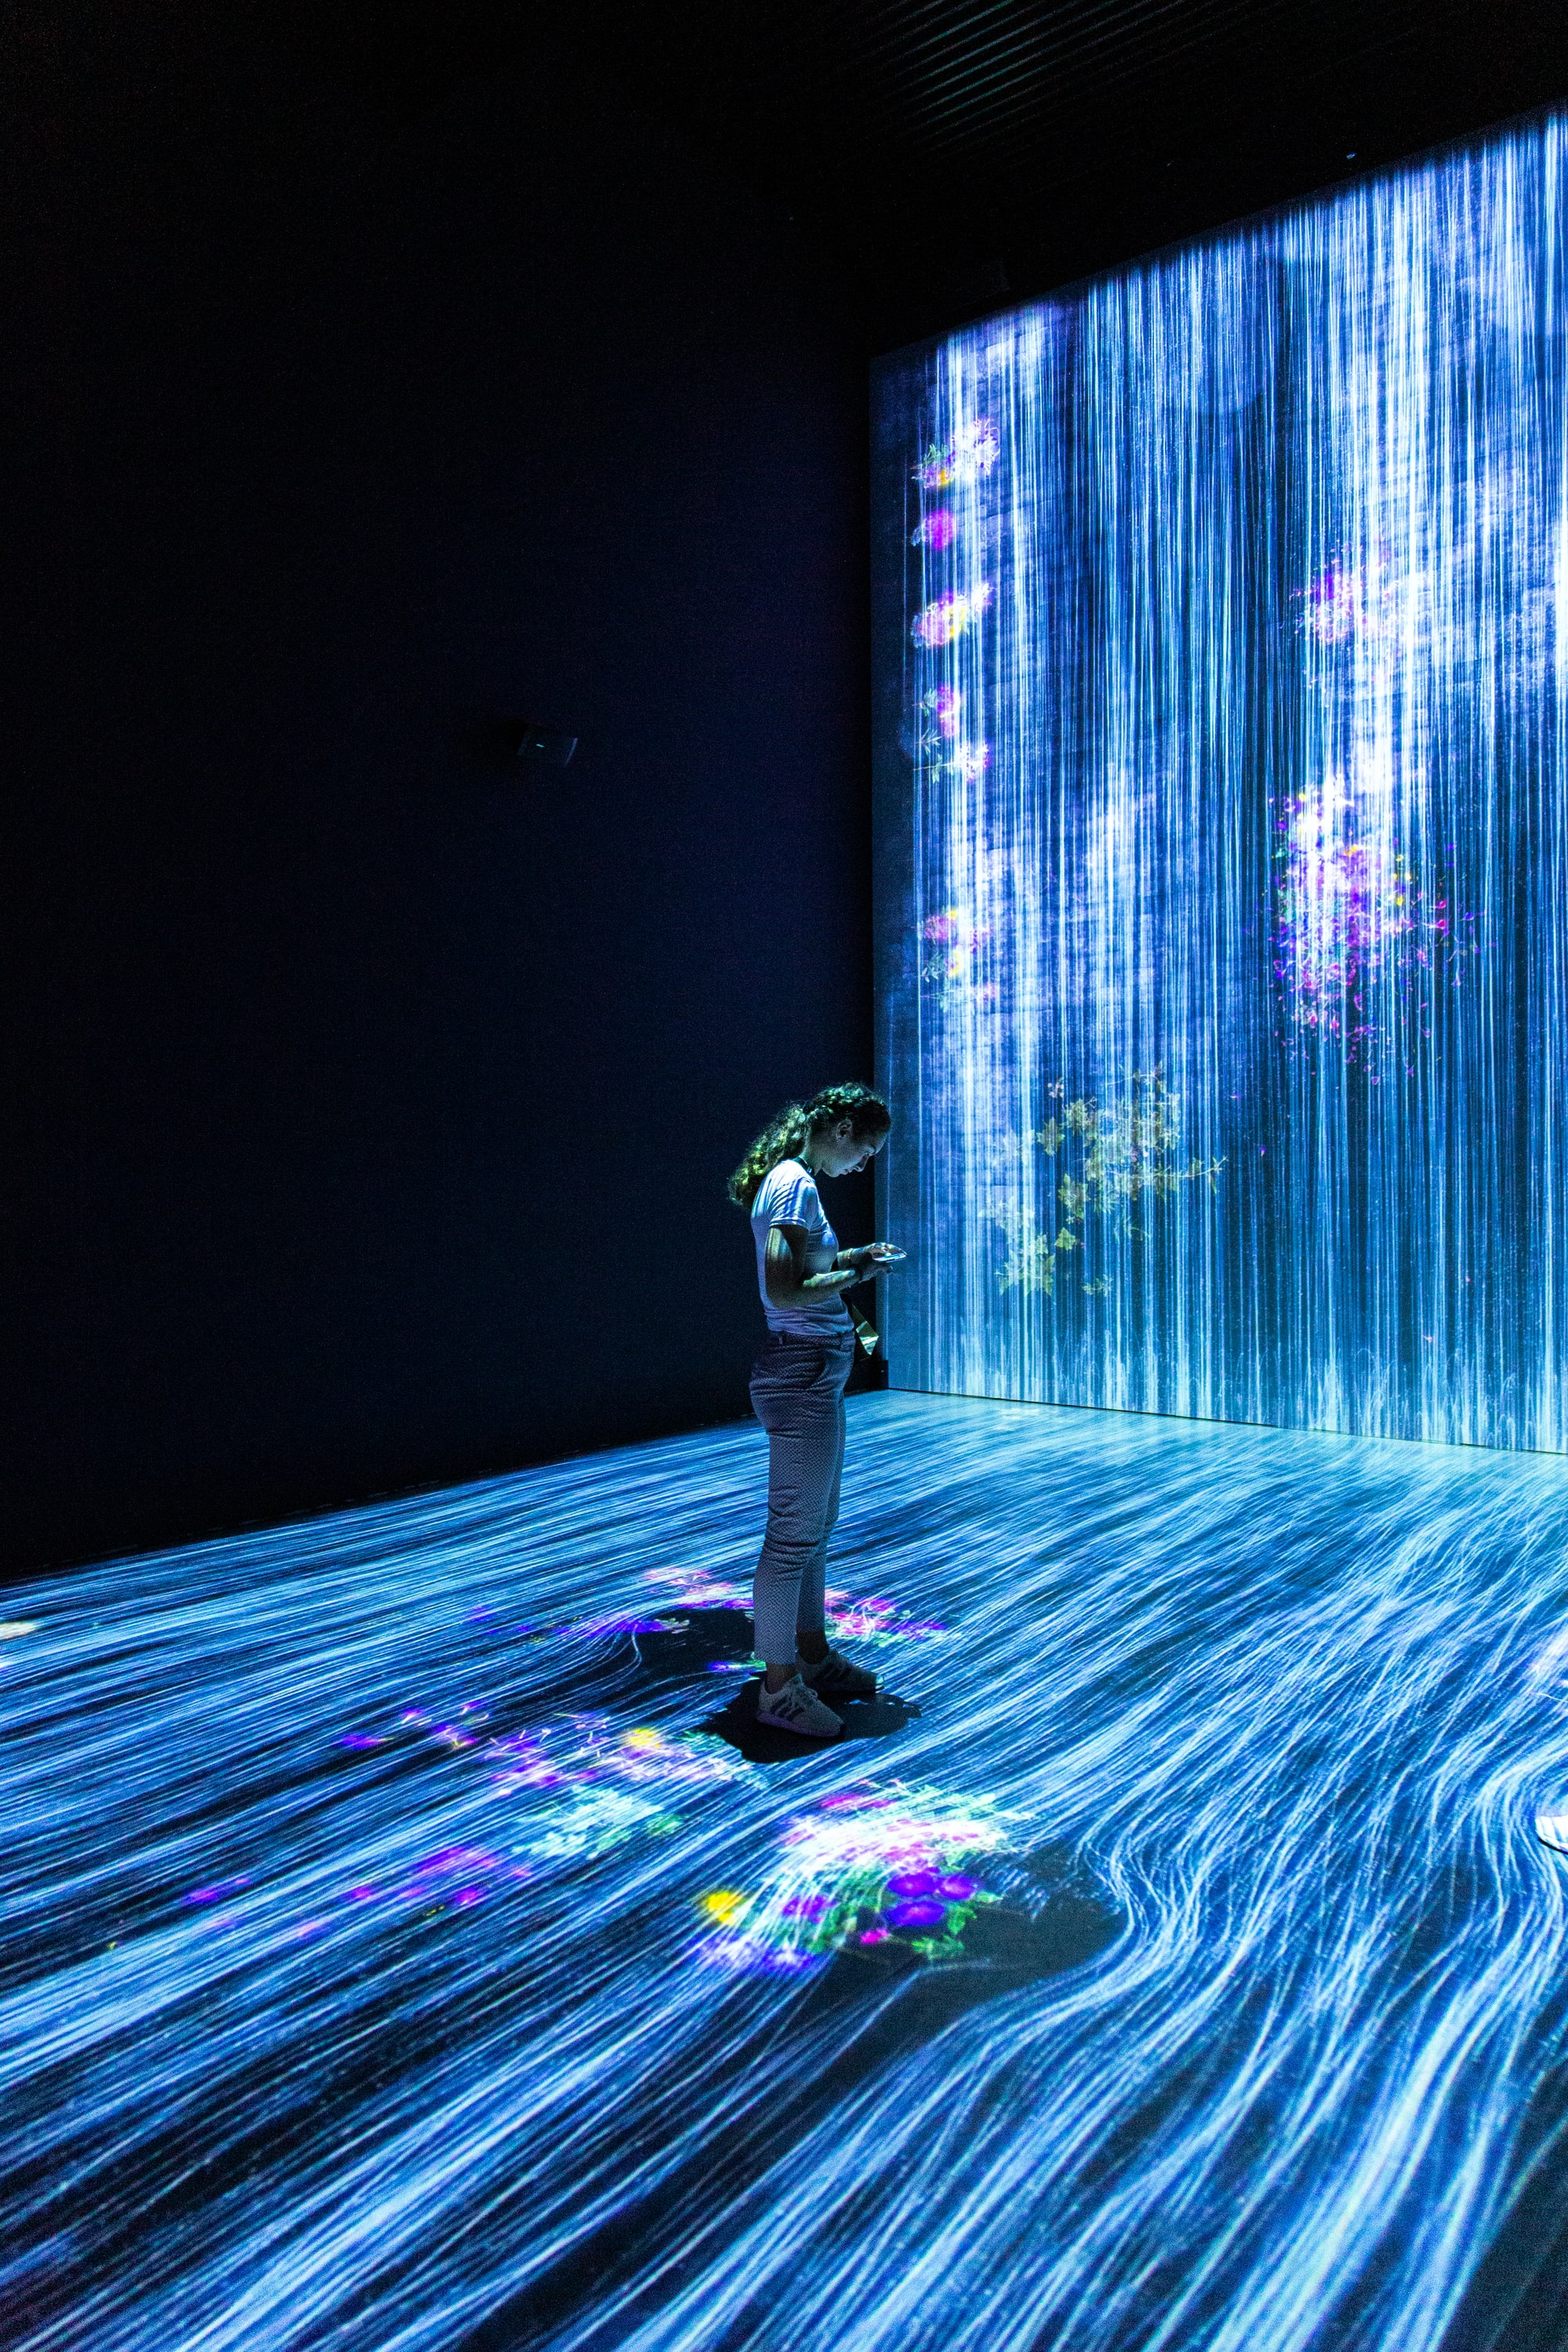 The role of AI and Machine learning in the future of arts and design